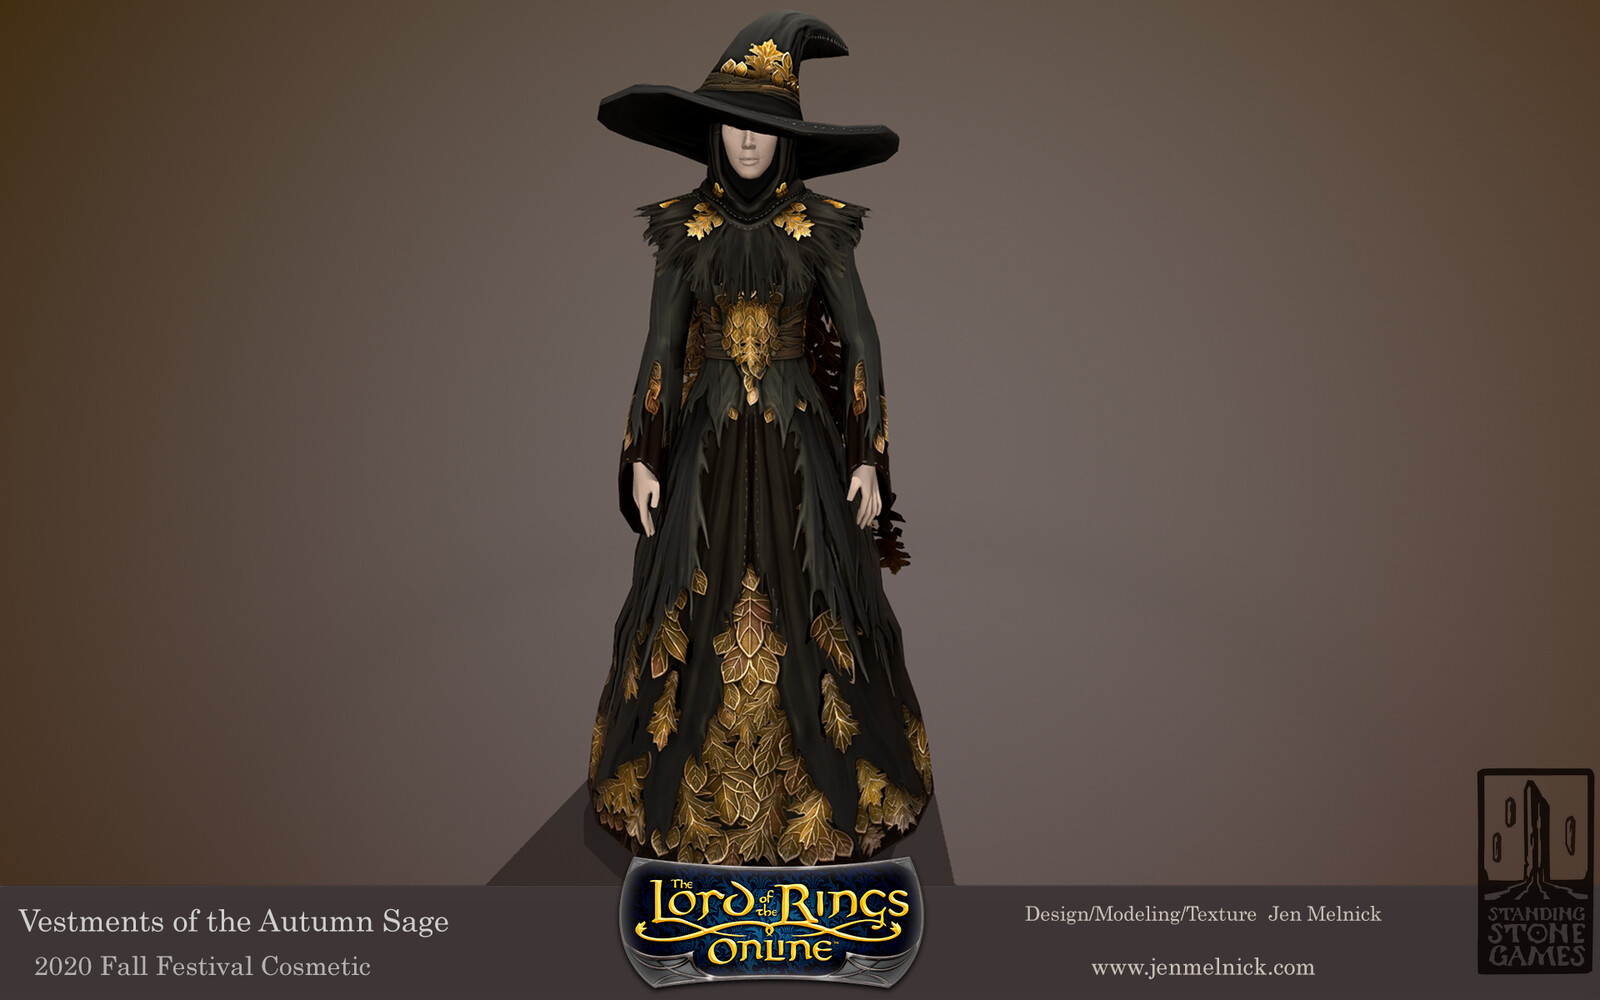 Lord of the Rings Online Vestments of the Autumn Sage Fall Festival 2020 Dress, Shoulders, Hat, and Cloak are all dyeable